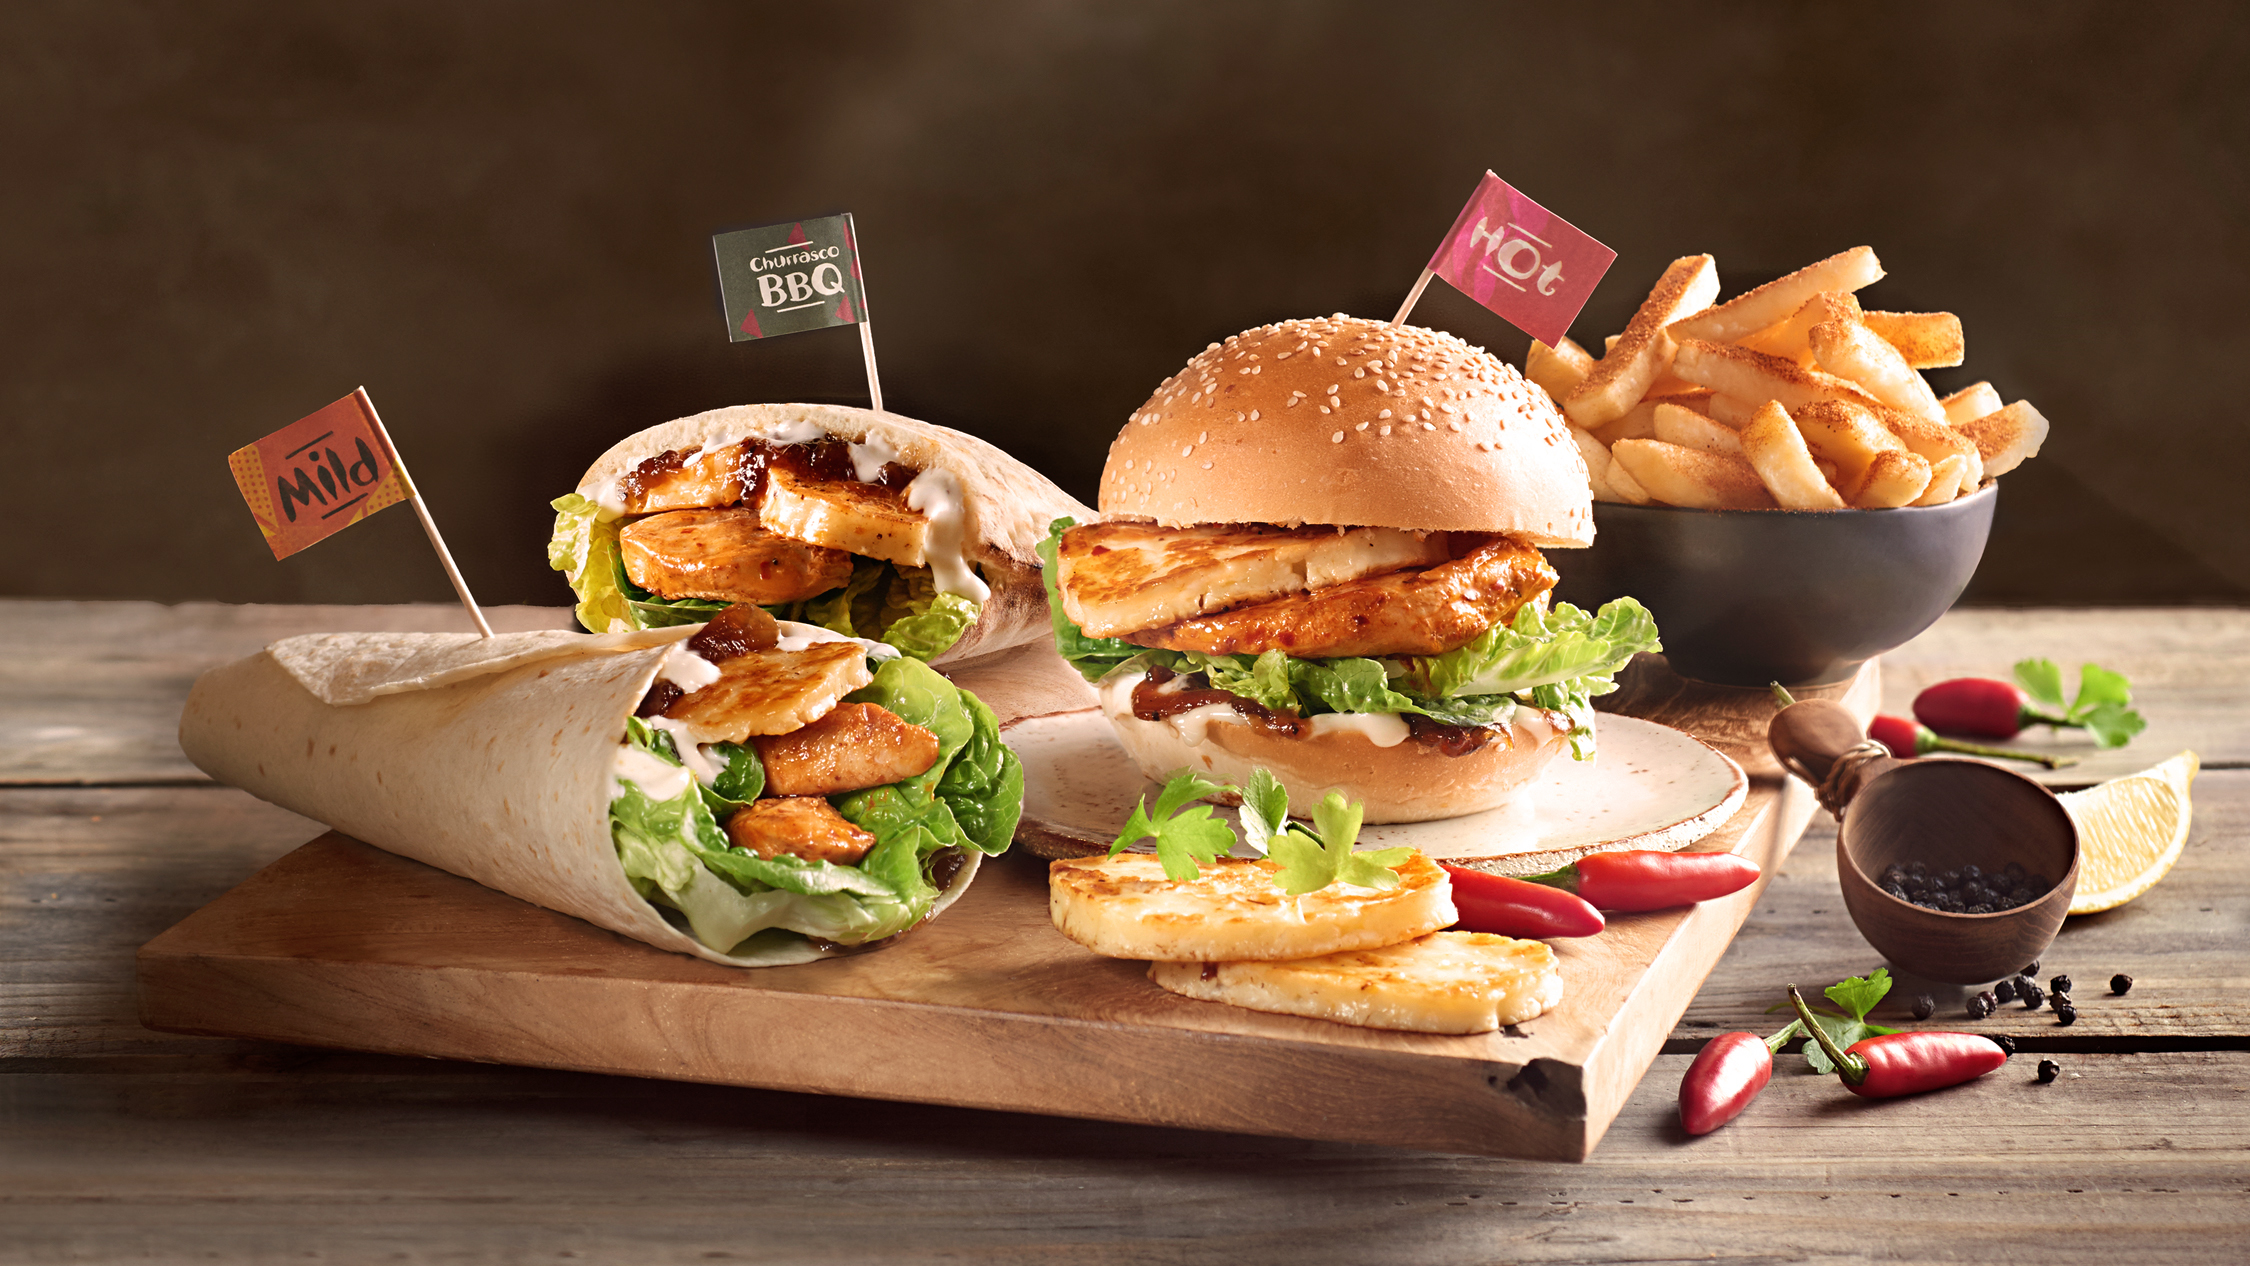 Nando's fulfils your cheese dreams with a halloumi chicken burger